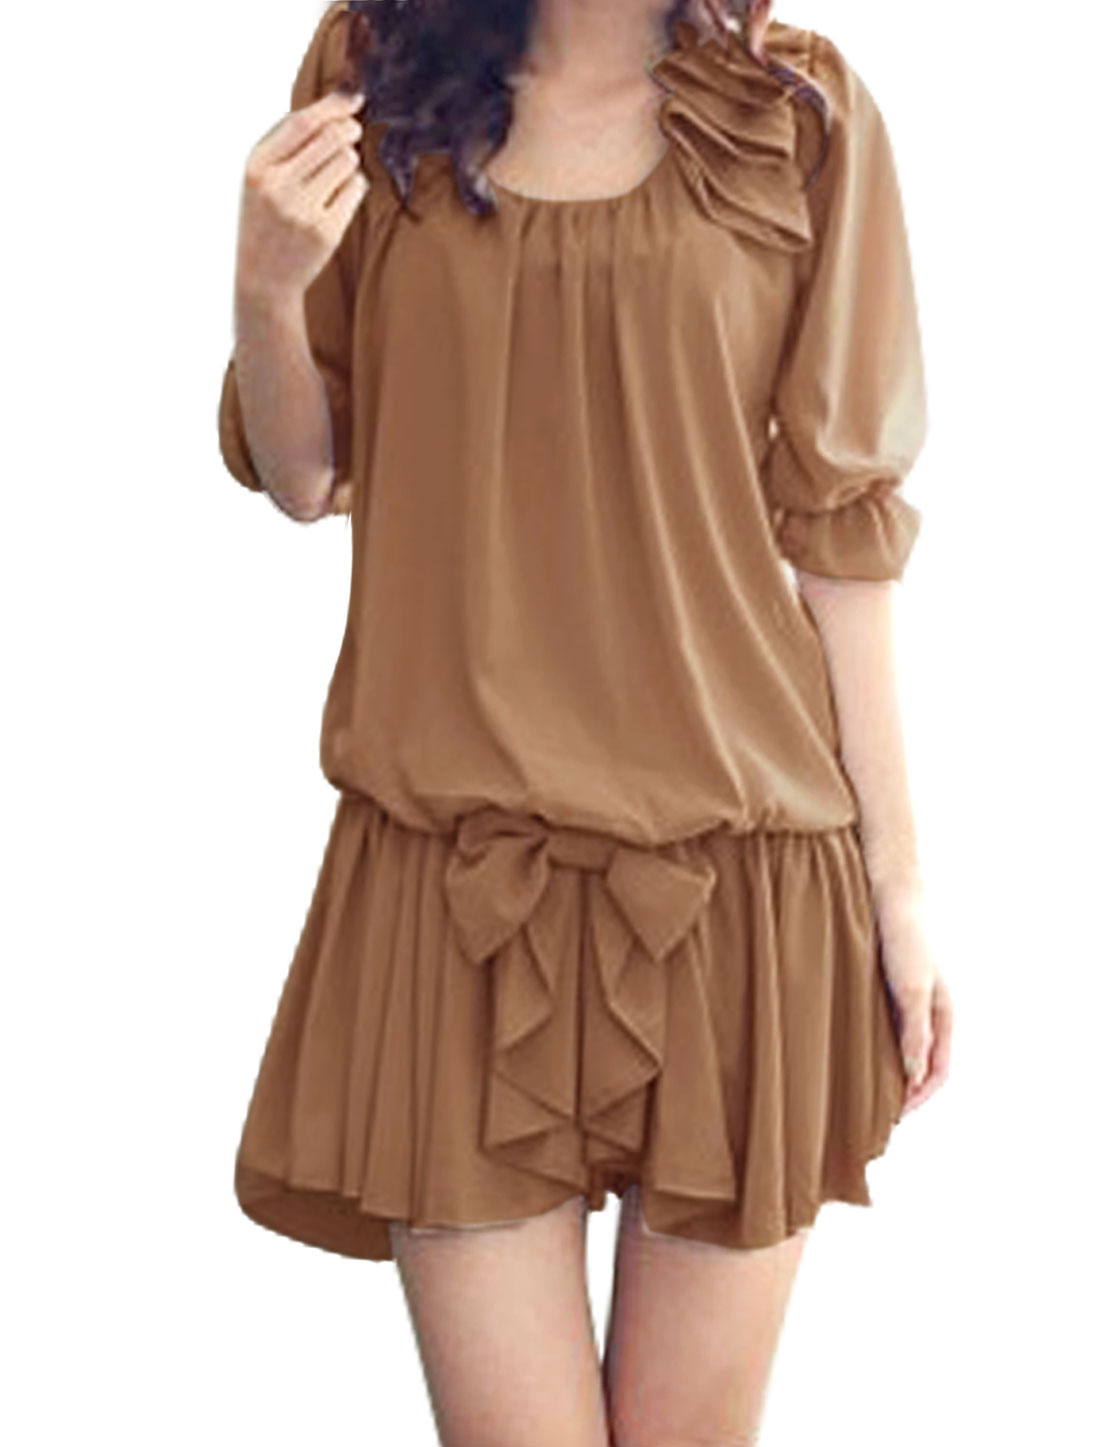 Lady Khaki Color Half Sleeve Elastic Waist Butterfly Knot Embellished Dress M